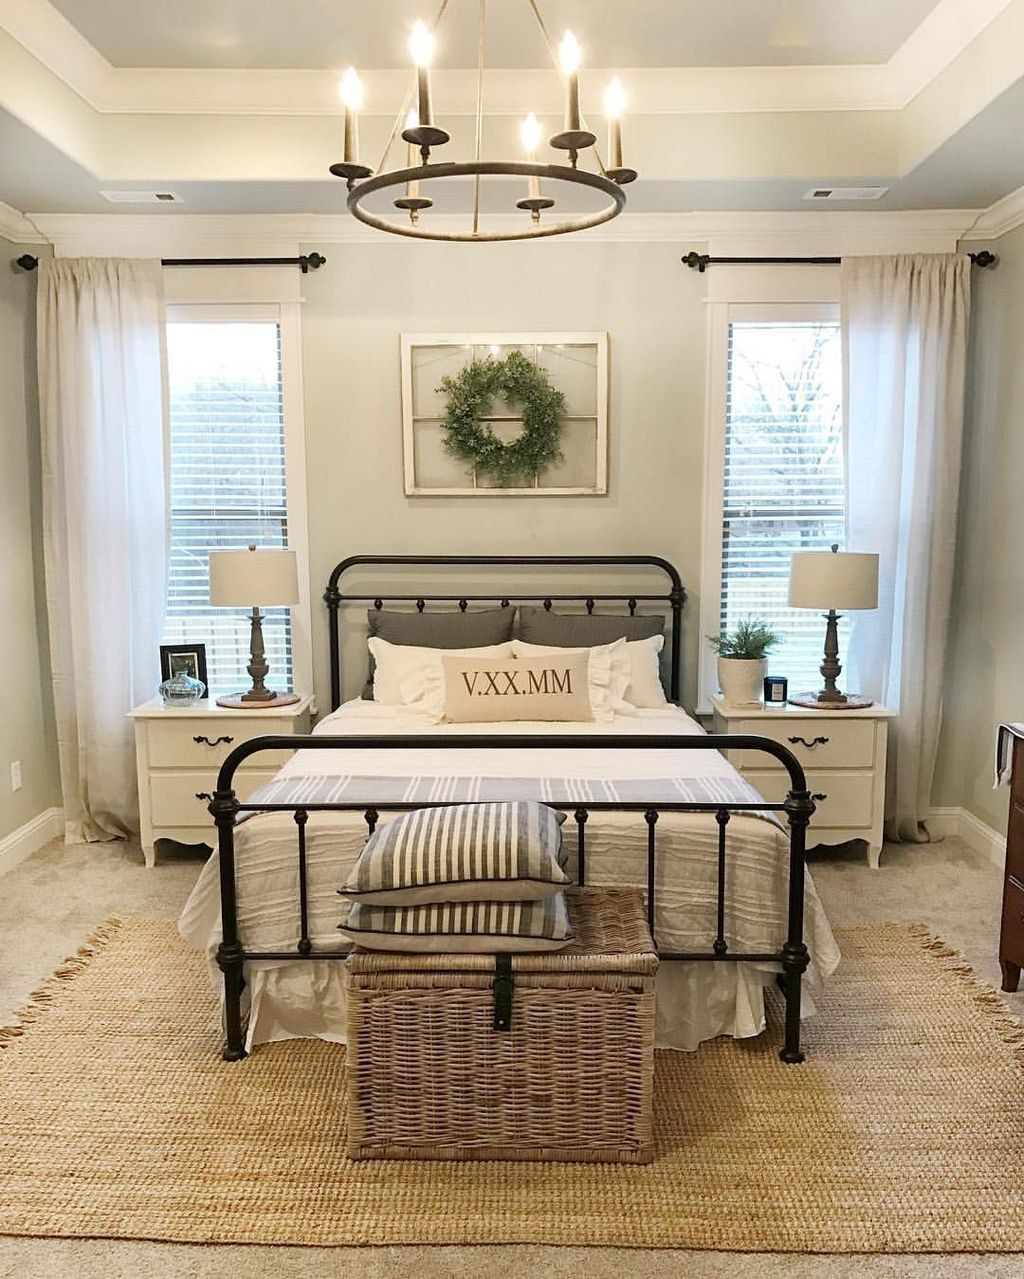 Classic and vintage farmhouse bedroom ideas vintage farmhouse